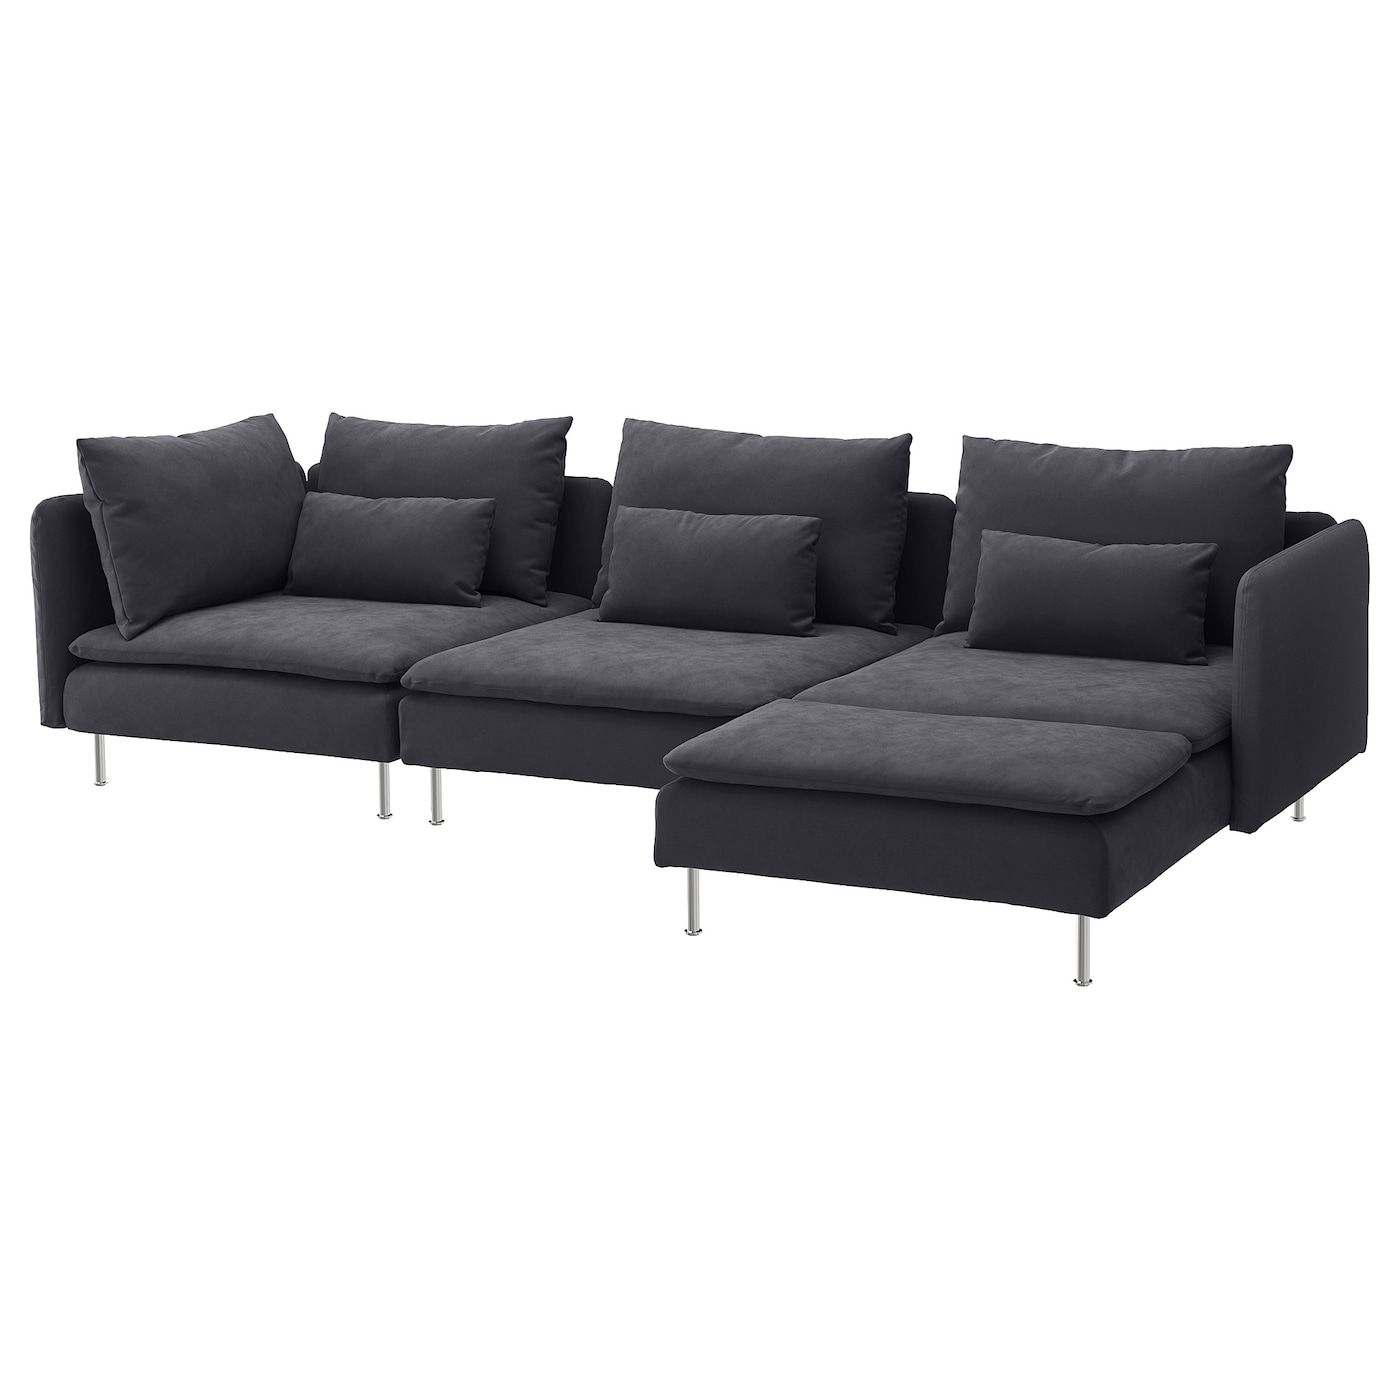 Soderhamn Sectional 4 Seat With Chaise Samsta Dark Gray In 2020 Grey Sectional Sofa Grey Sectional Ikea Sofa